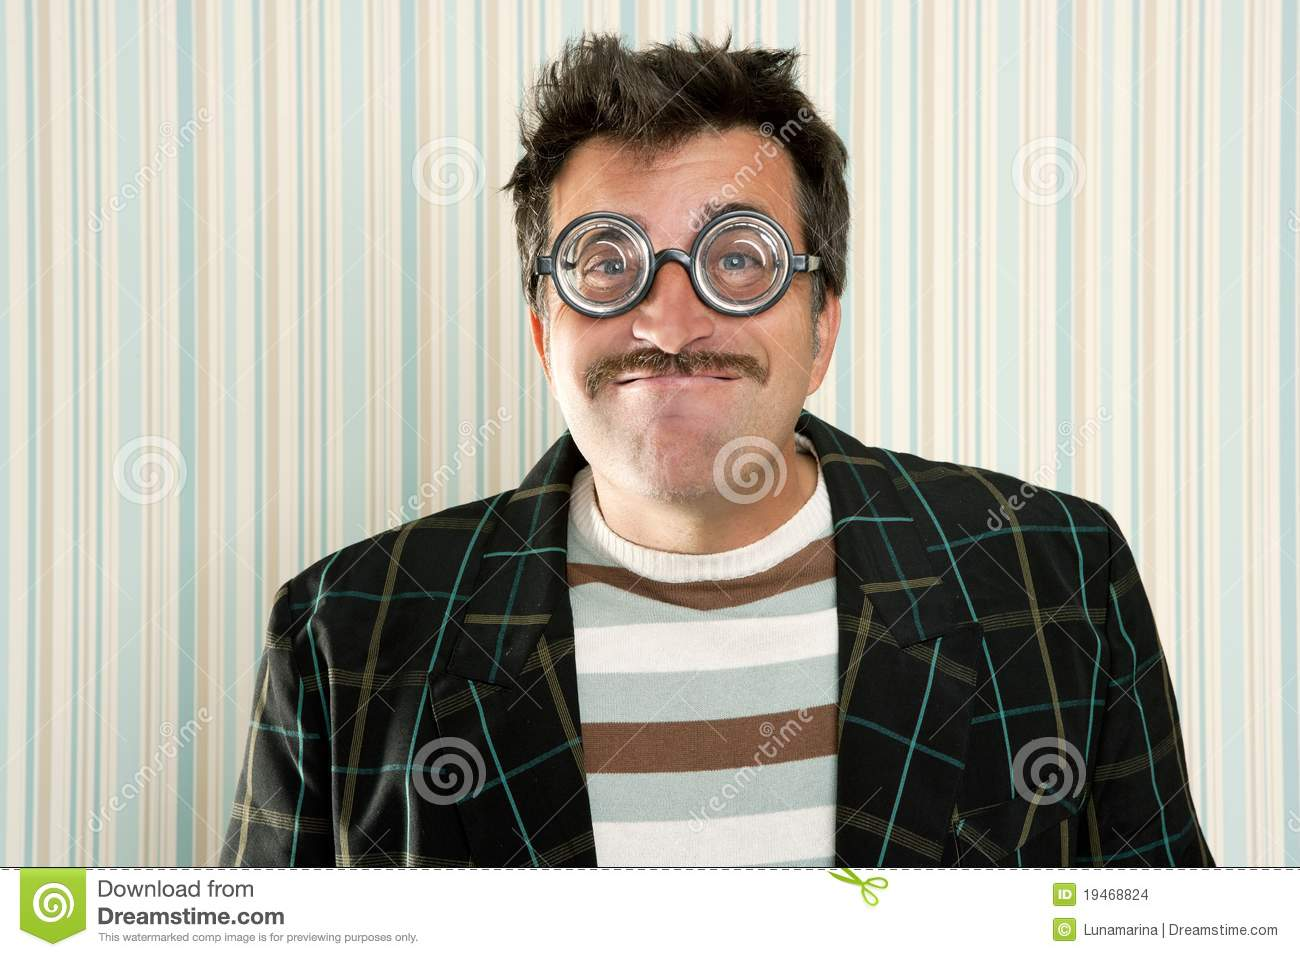 Nerd silly crazy myopic glasses man funny gesture